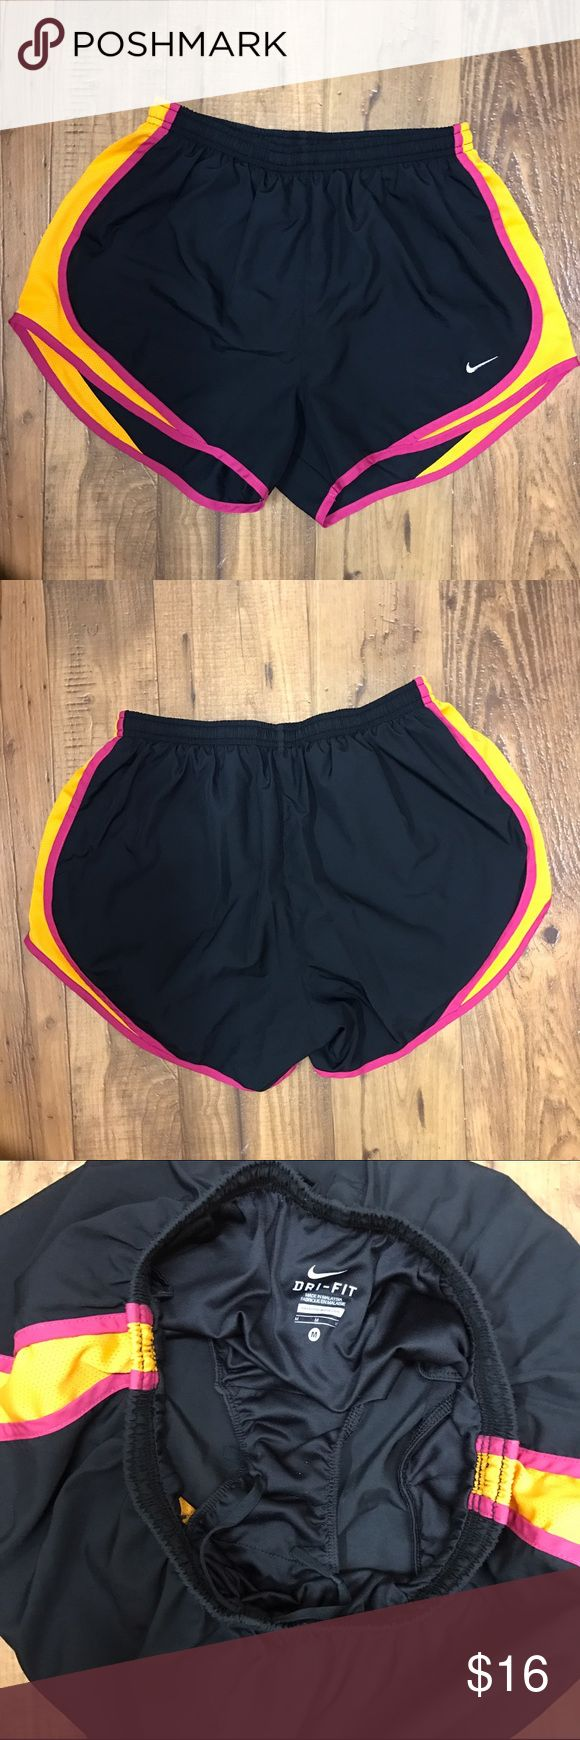 Nike Tempo Running Shorts Nike Tempo Running Shorts - black with pink and orange accents  Size M  Excellent condition.   💲💲OFFERS WELCOME💲💲 ❌❌NO Trades❌❌ Nike Shorts